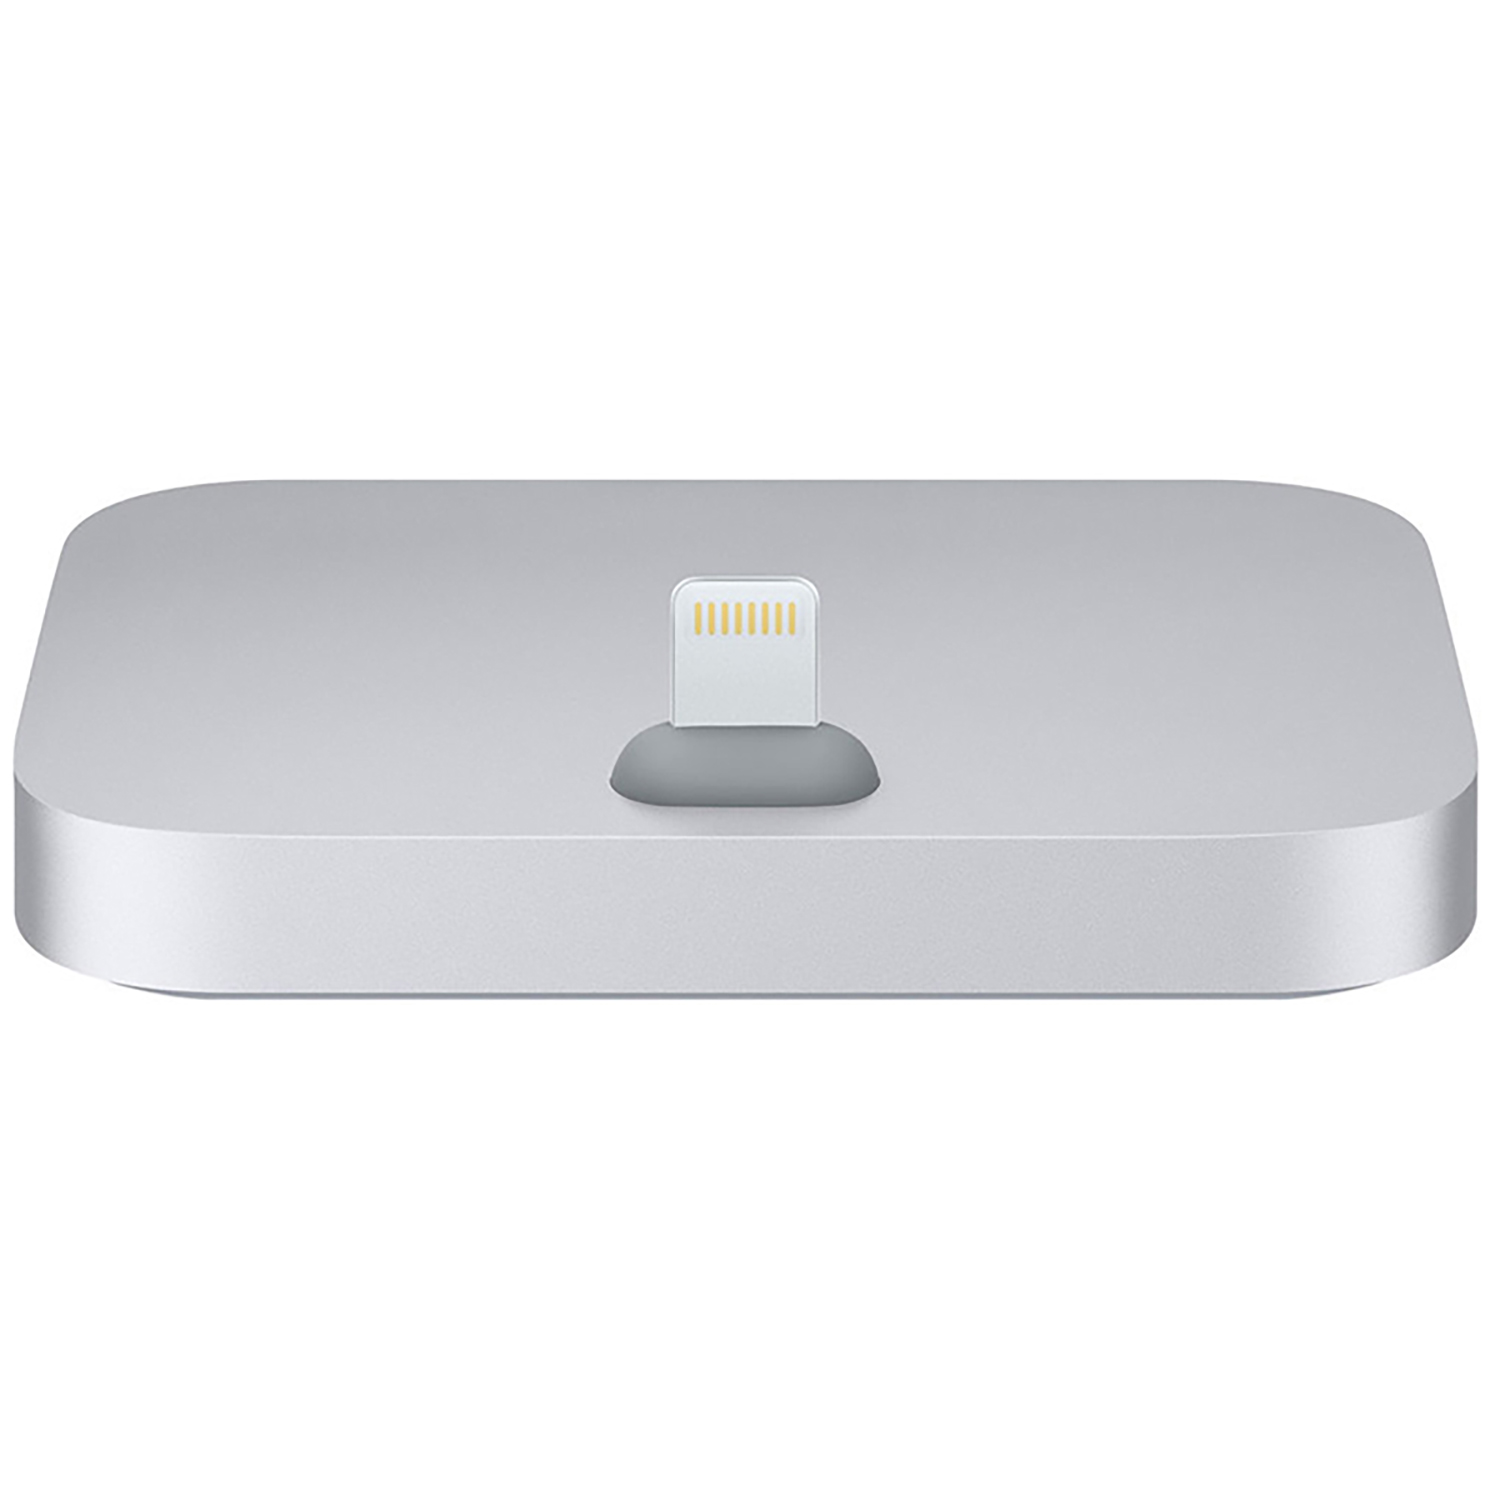 Apple iPhone Lightning Dock - Space Gray (Official)